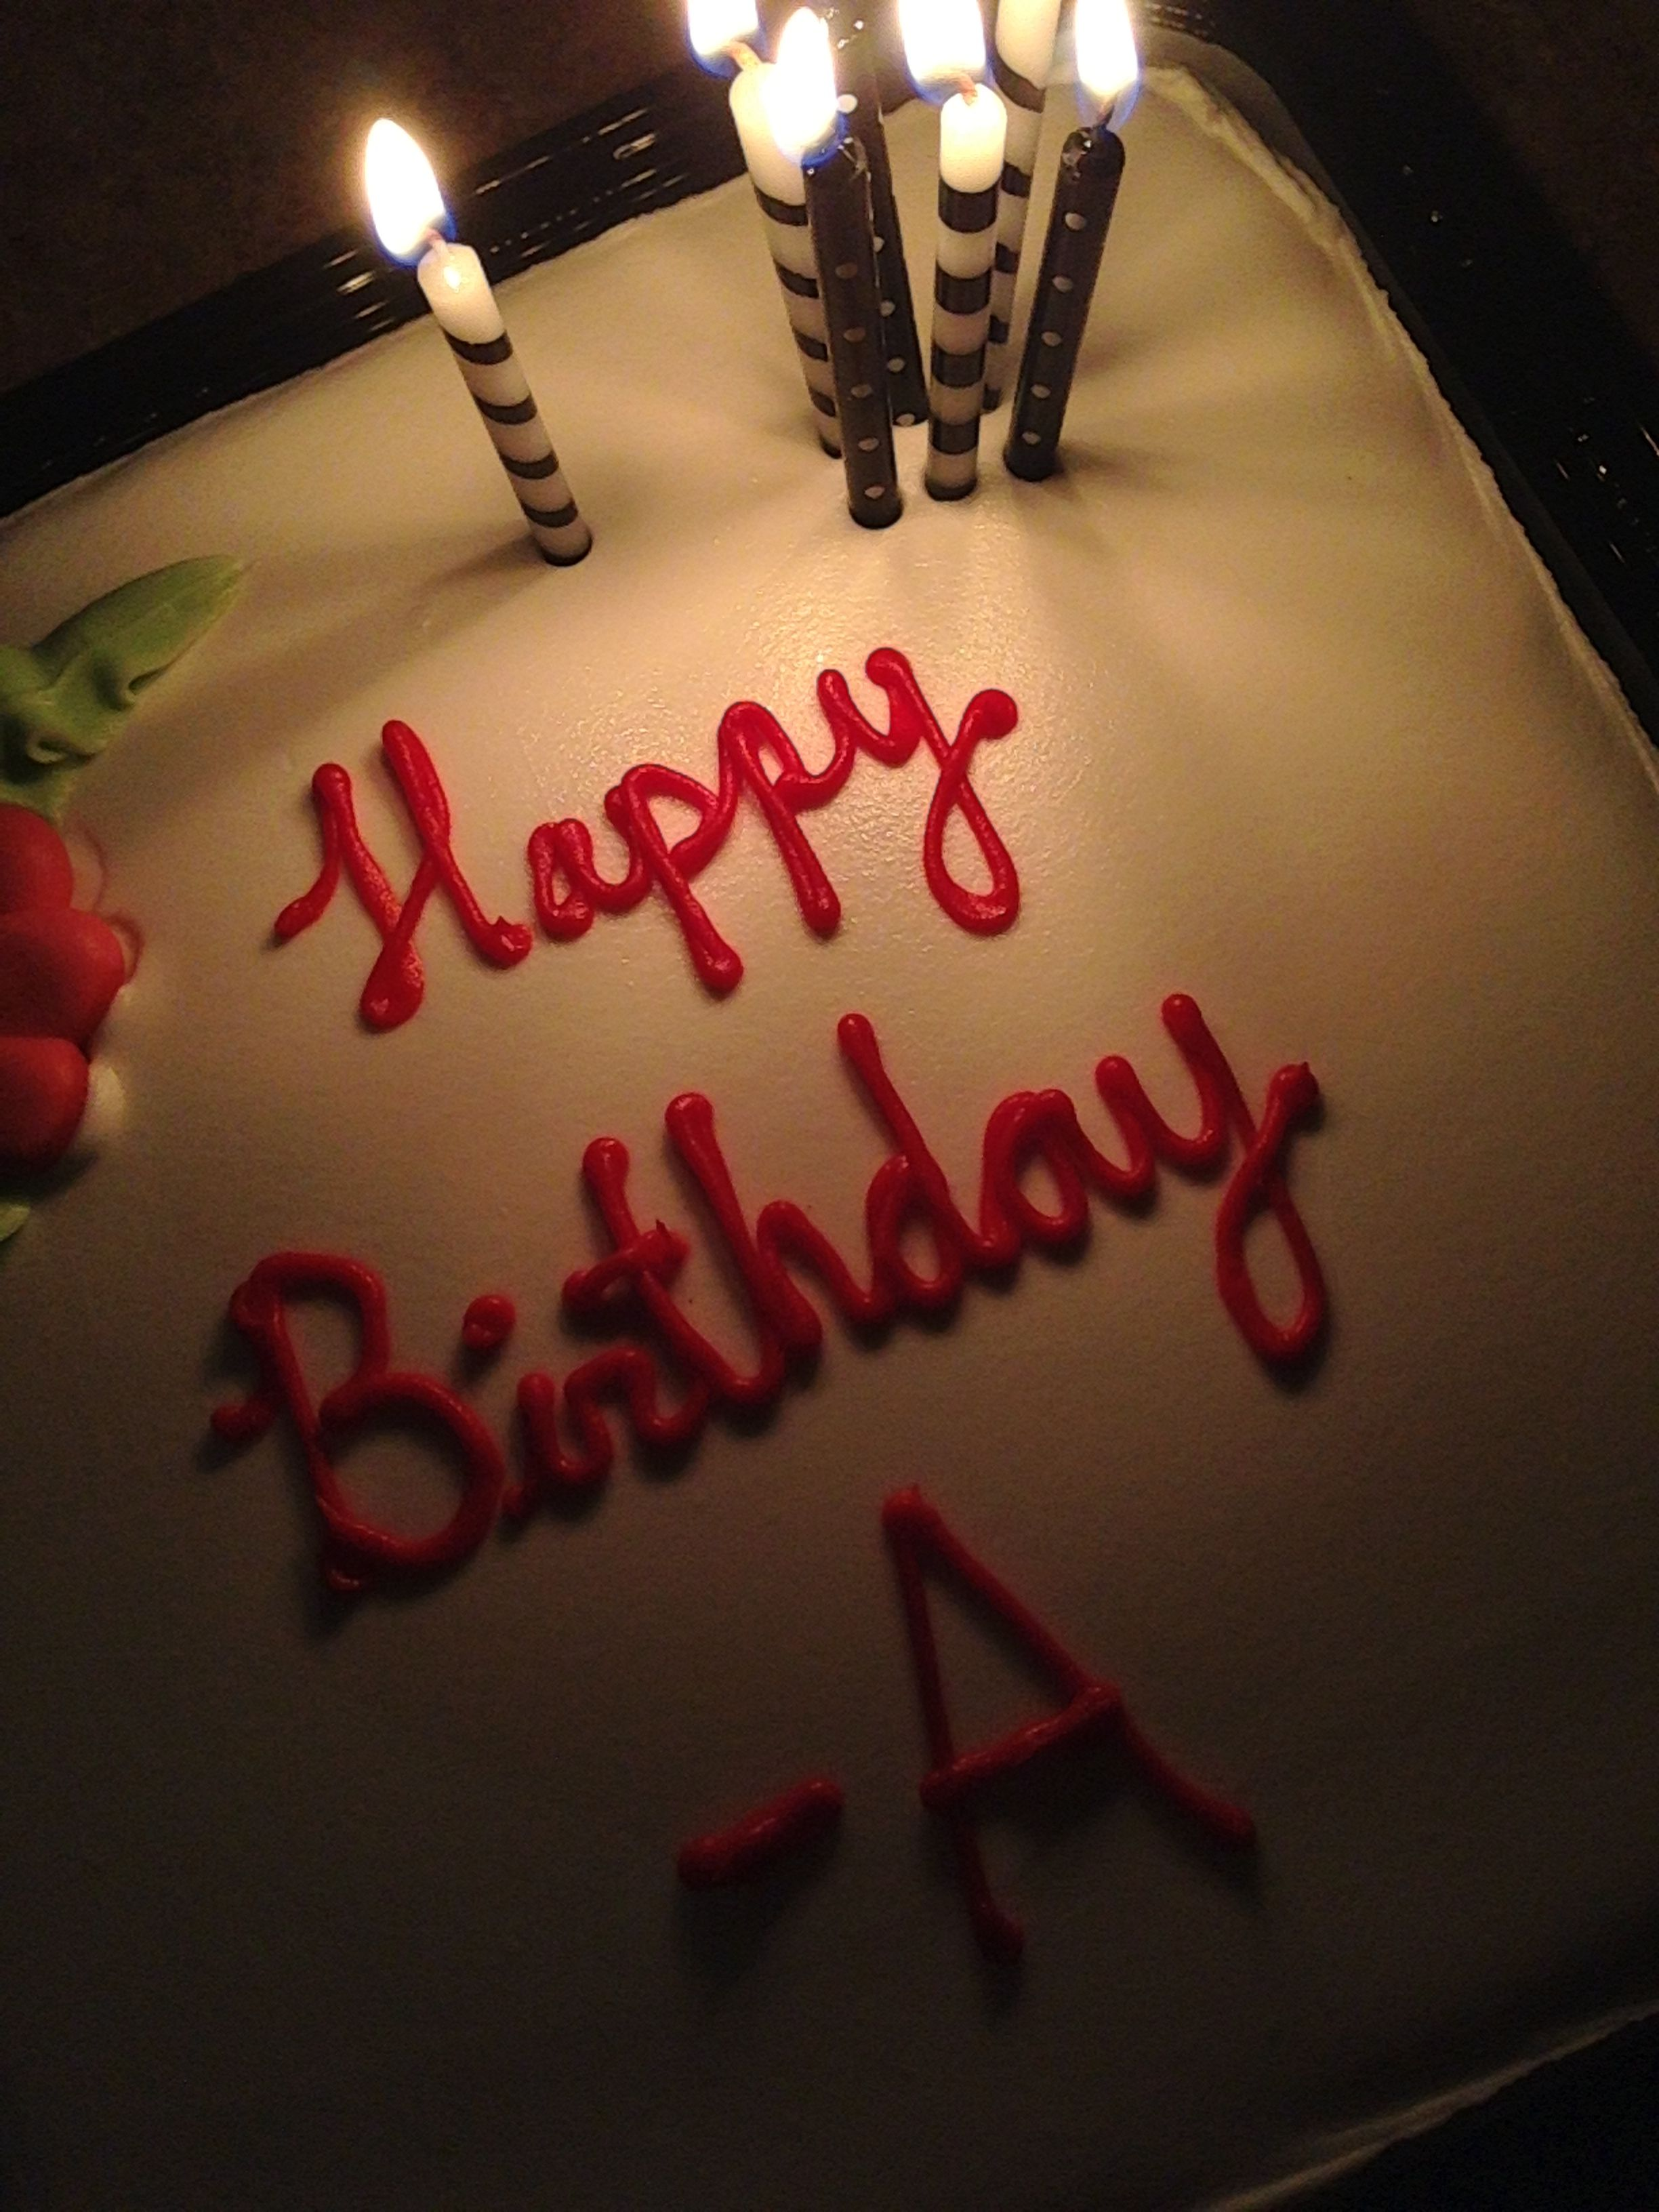 Pretty little liars a wee pre bday cake for Liz from